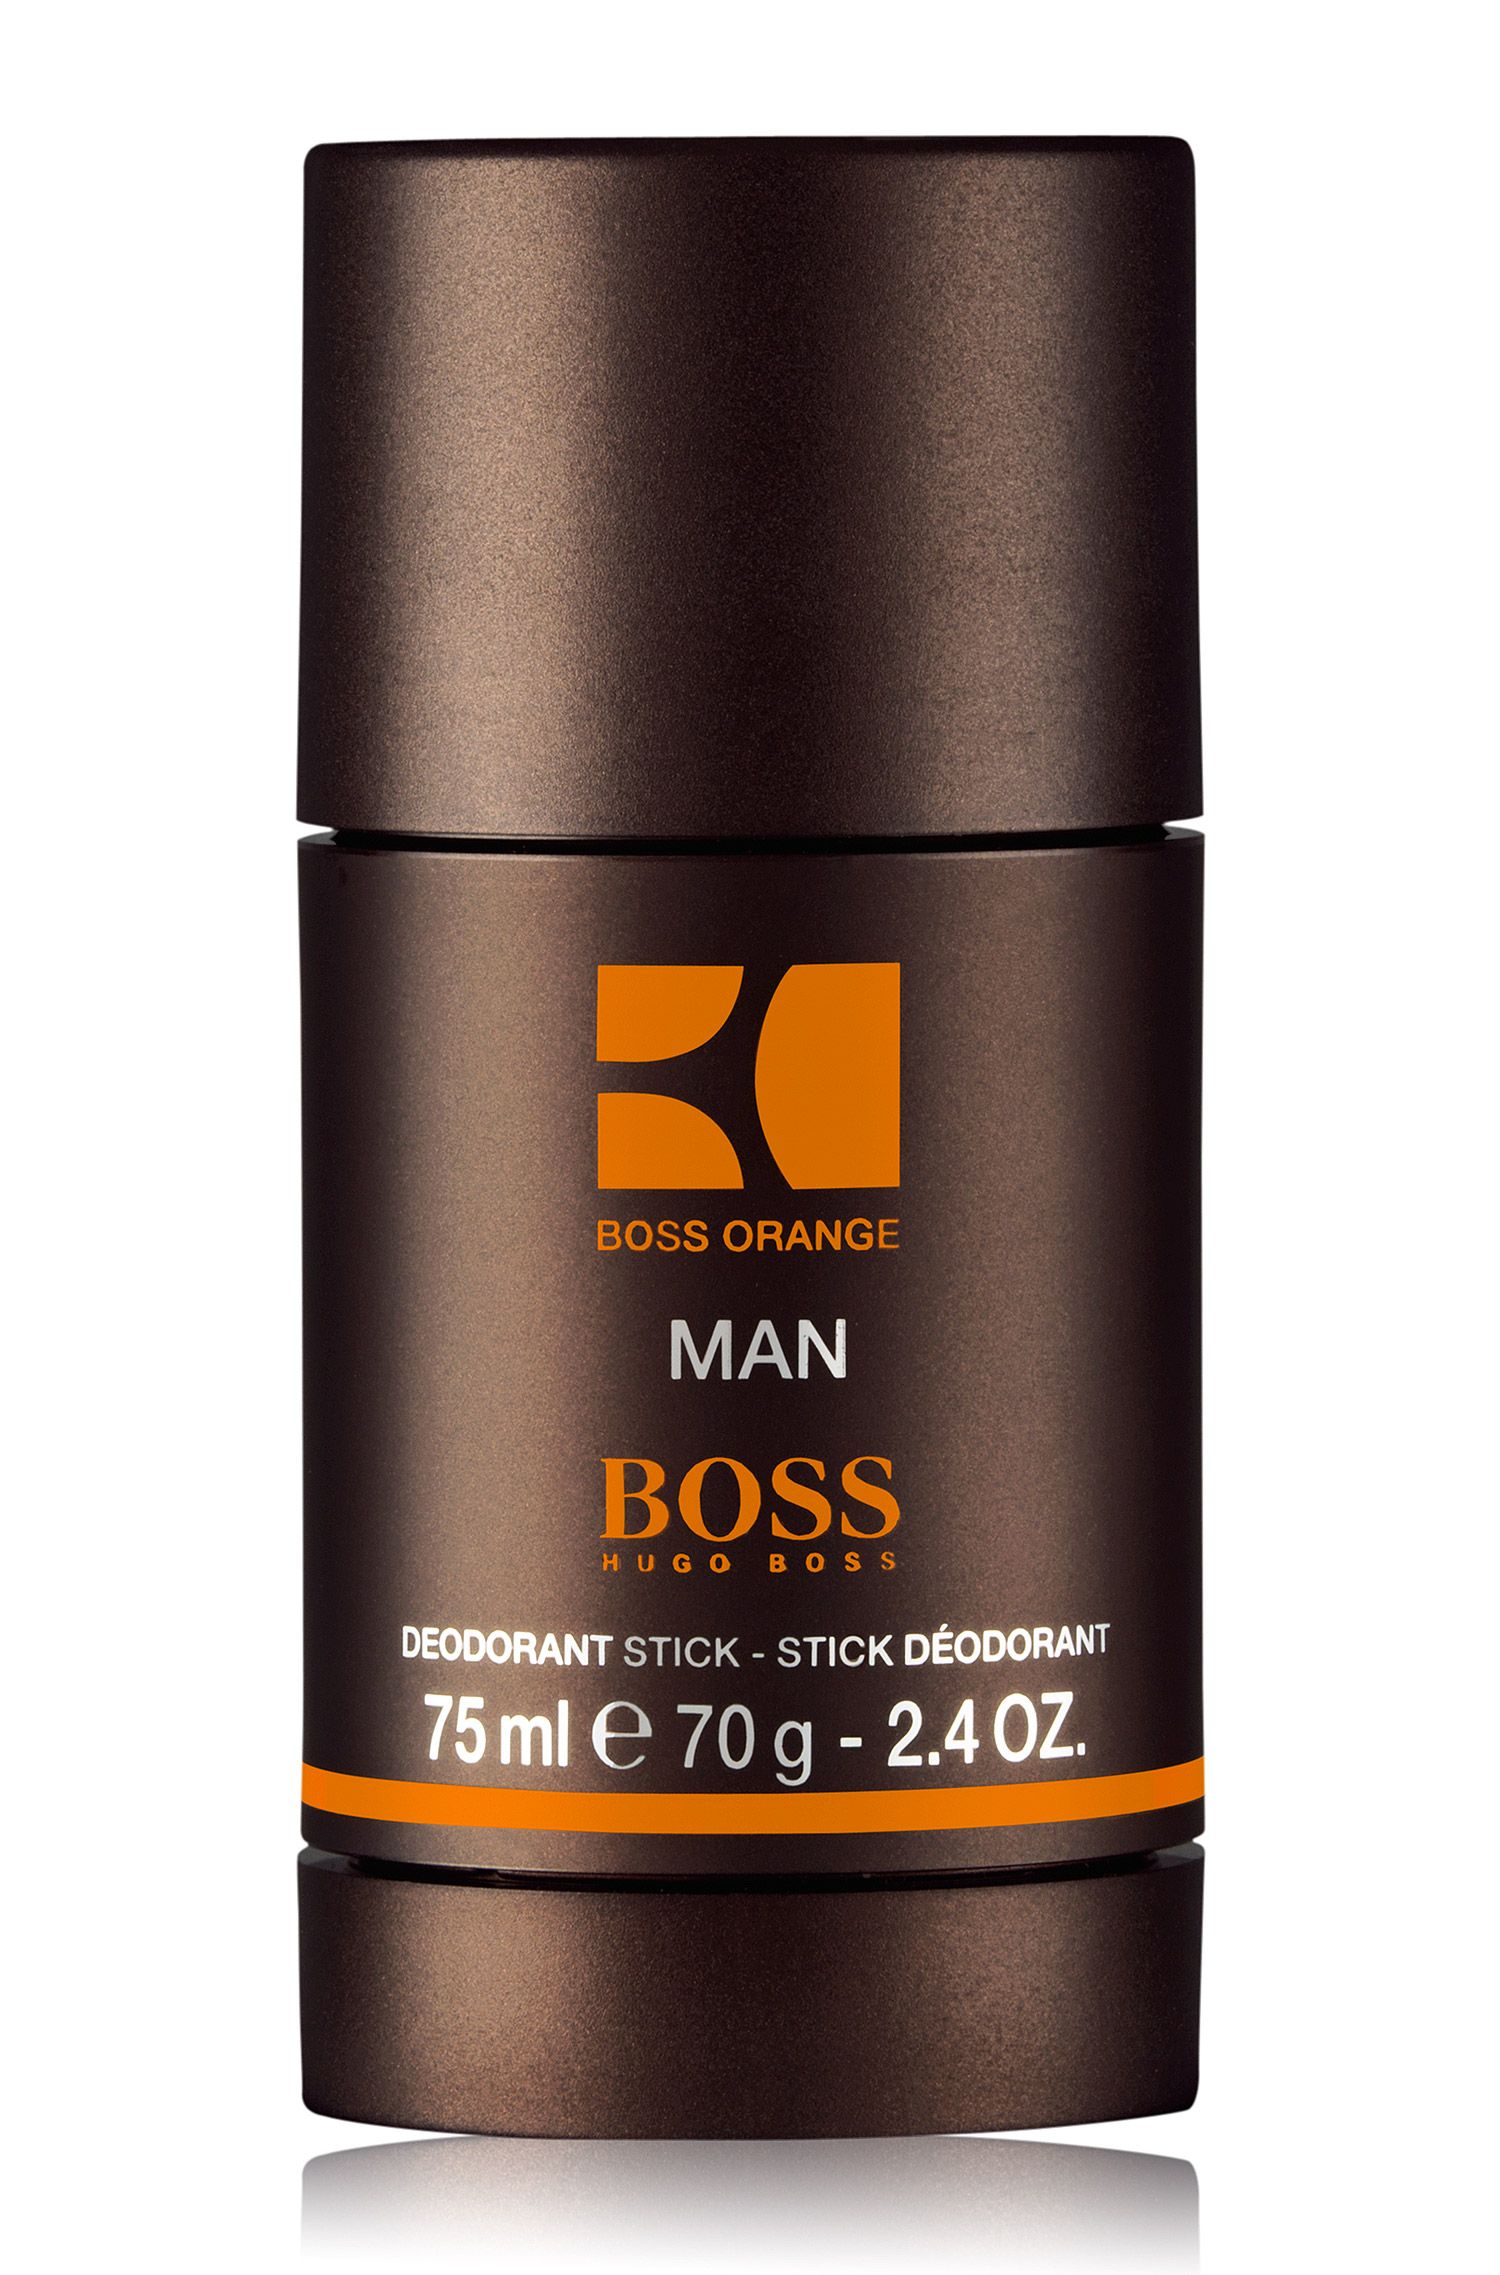 Desodorante en barra BOSS Orange Man de 75 ml